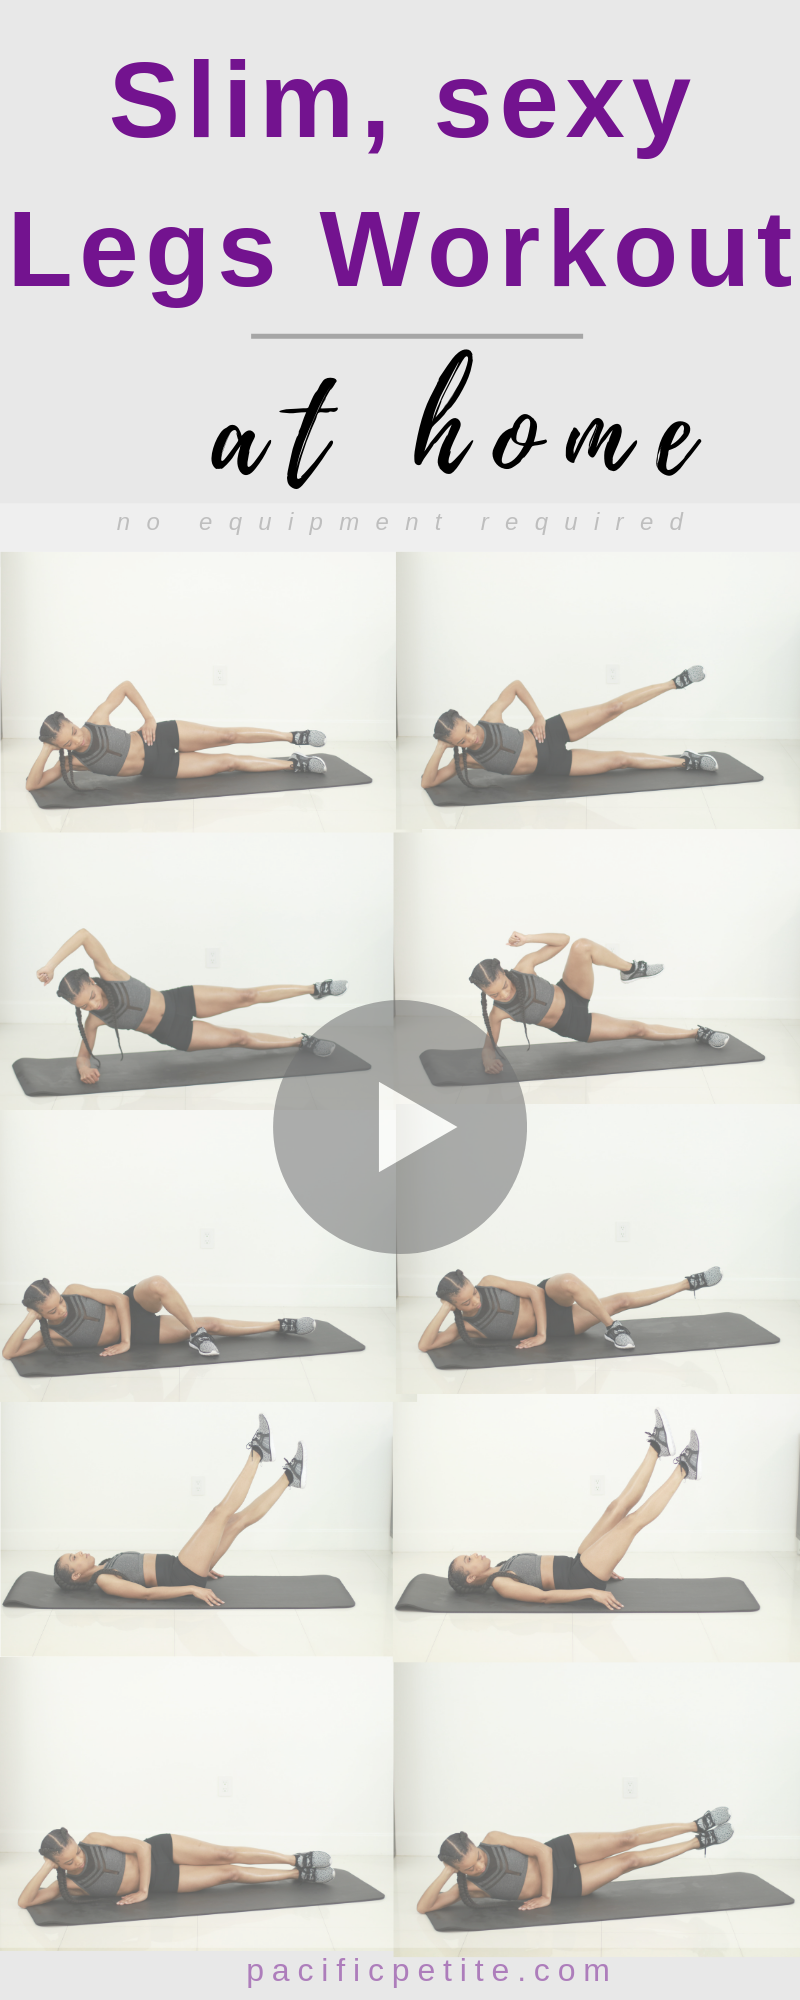 Pin On Workout For Legs Thighs Get Slim Legs And Reach Healthy Workout Goals